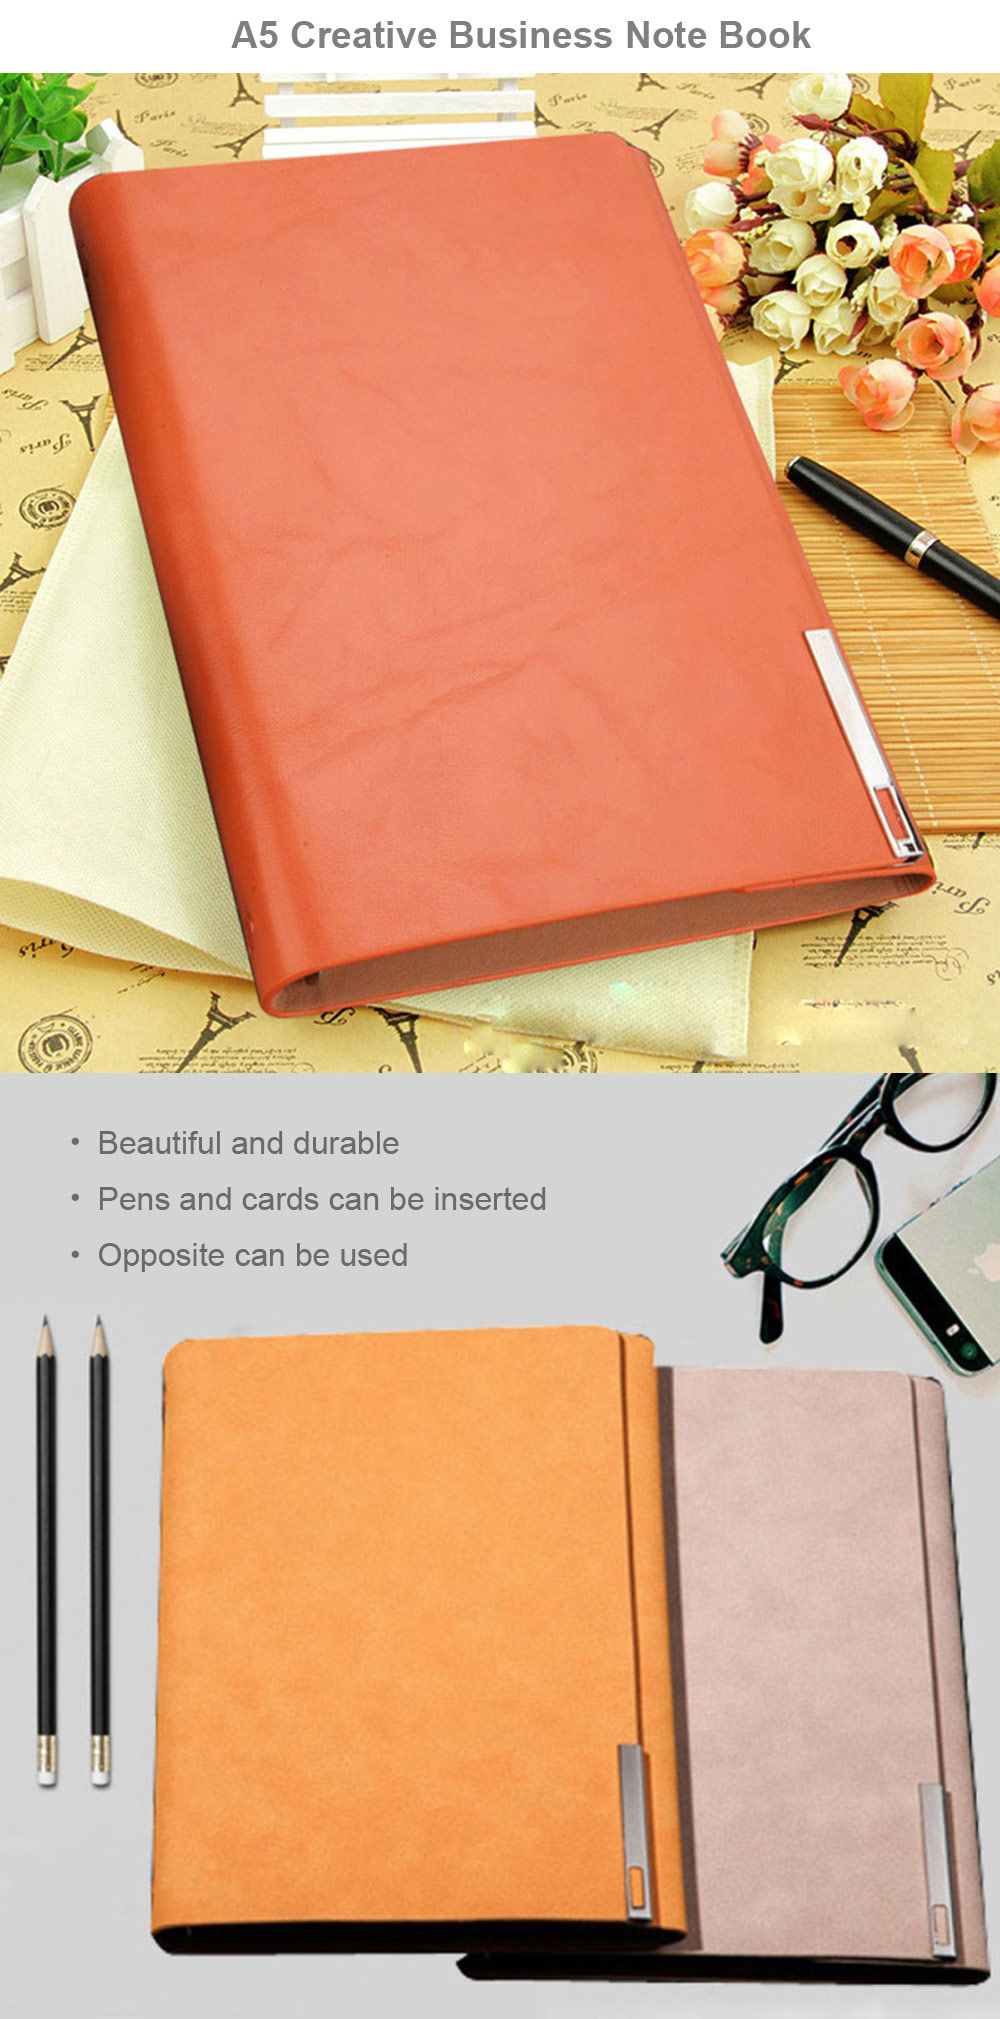 A5 Creative Business Note Book with PVC Design